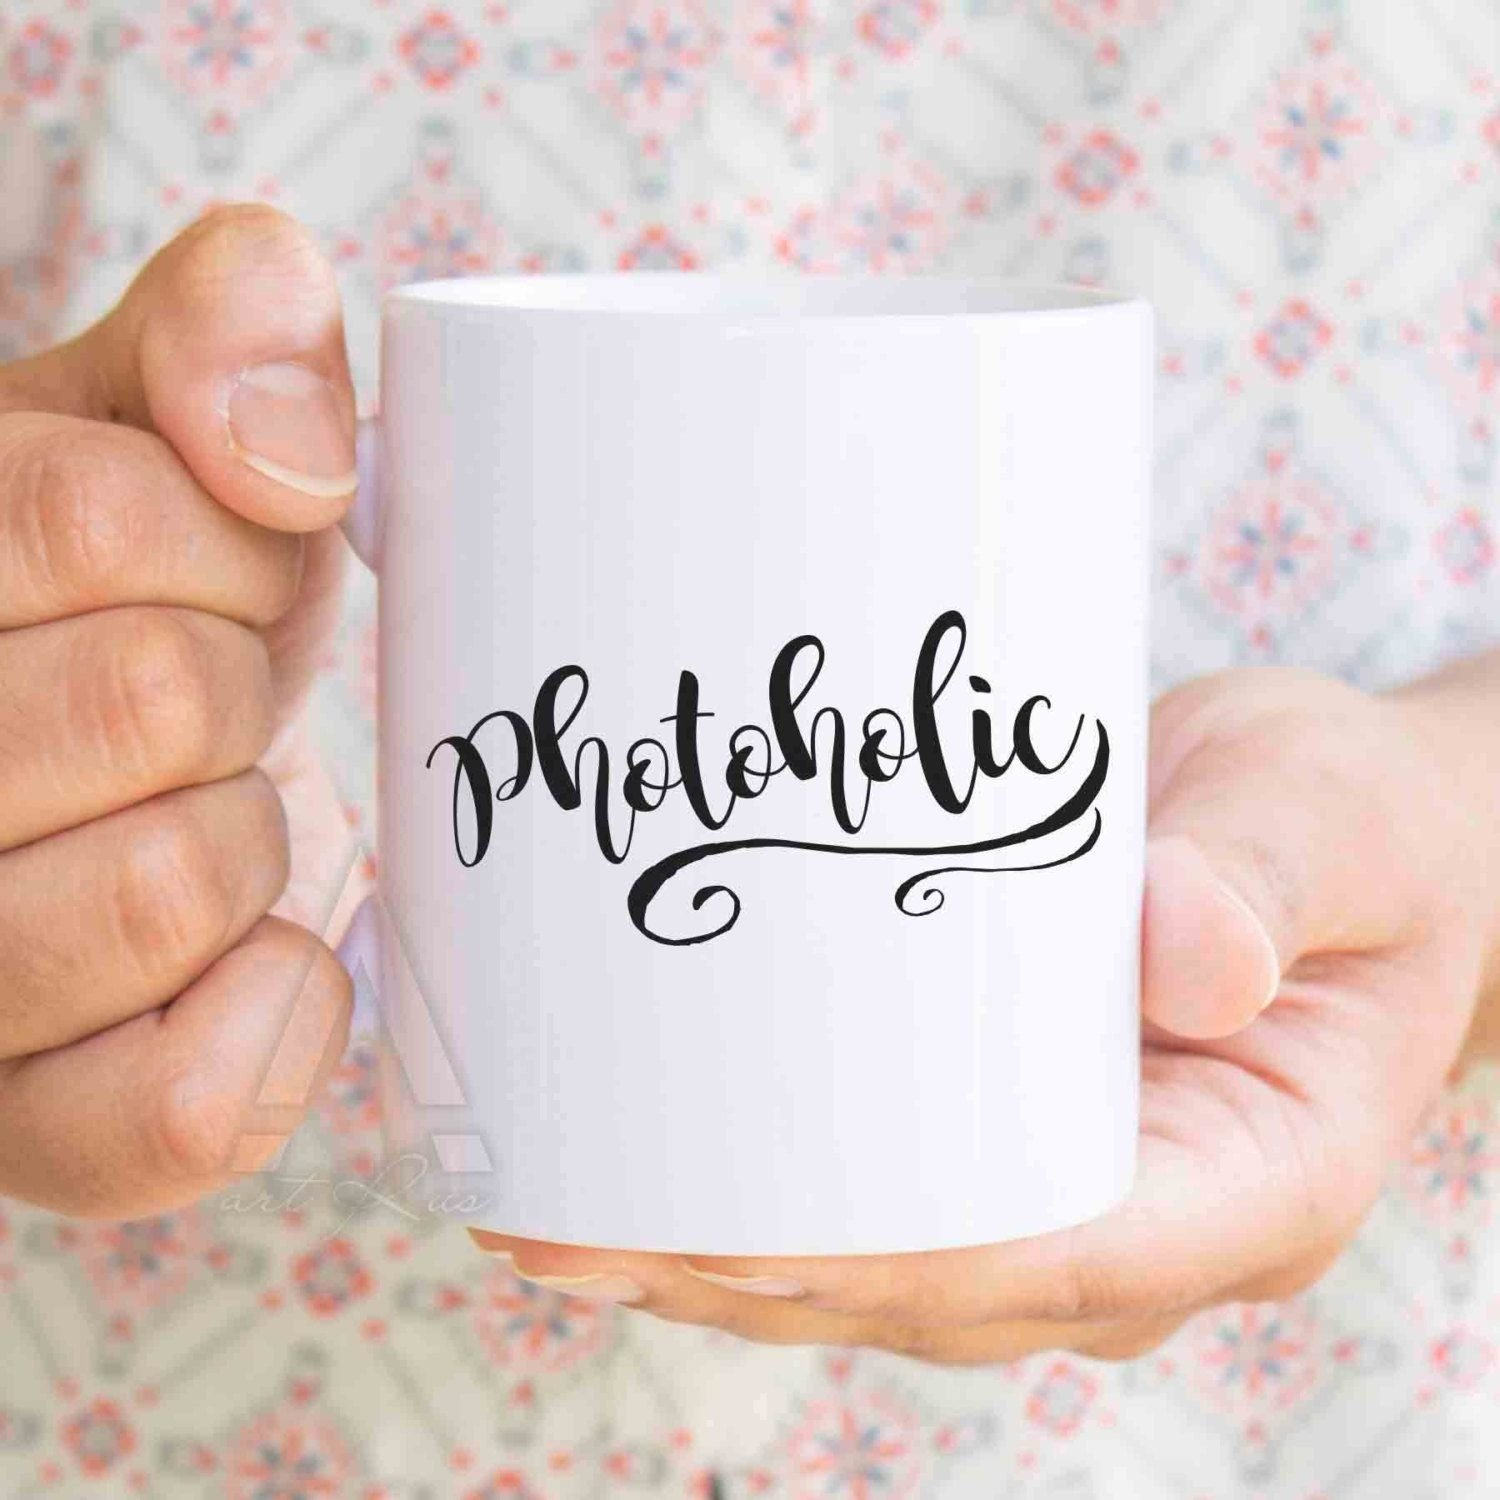 10 Fashionable Gift Ideas For Photography Lovers photoholic funny photography mug gifts for photographers